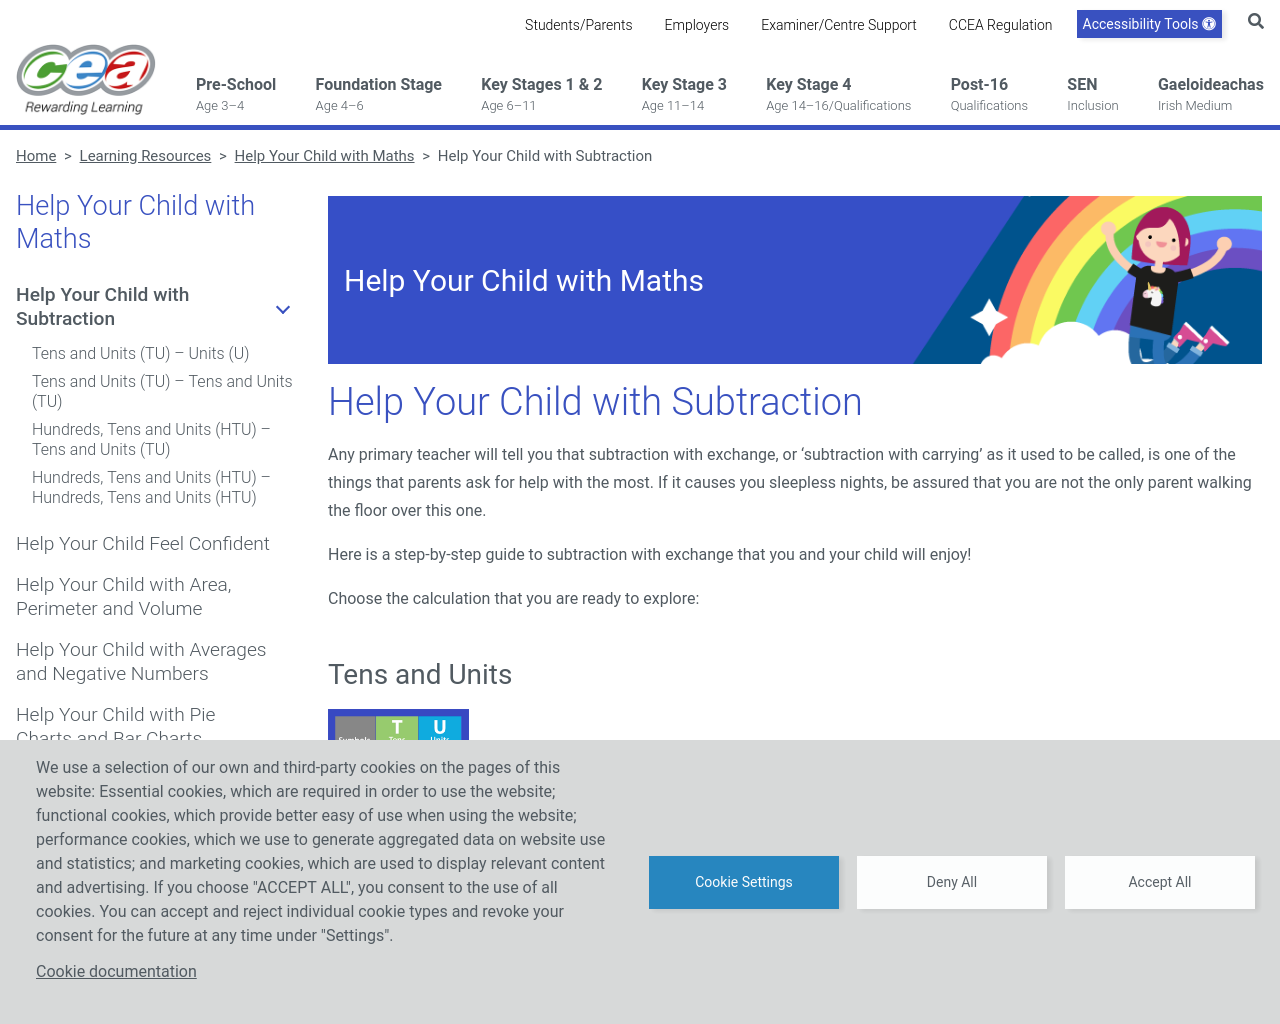 Help your Child with Subtraction